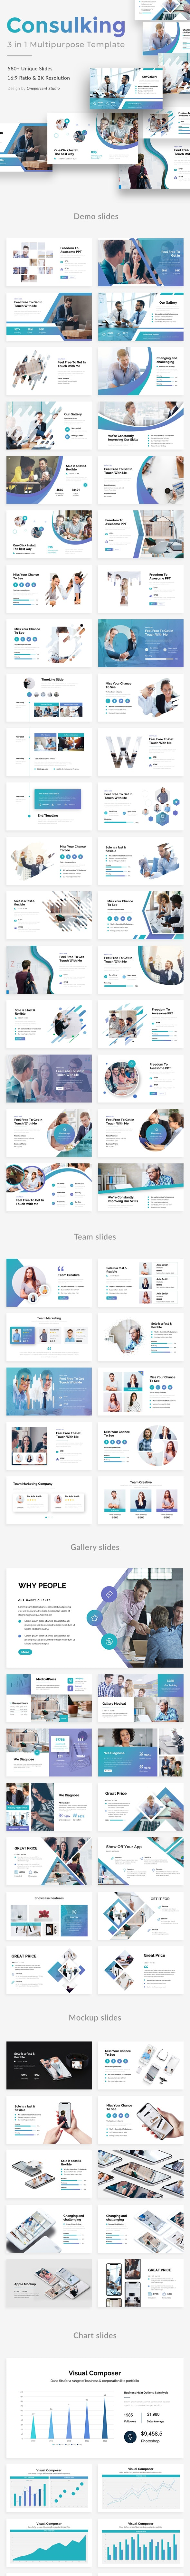 3 in 1 Consulking Pitch Deck  Bundle Powerpoint Template - Creative PowerPoint Templates